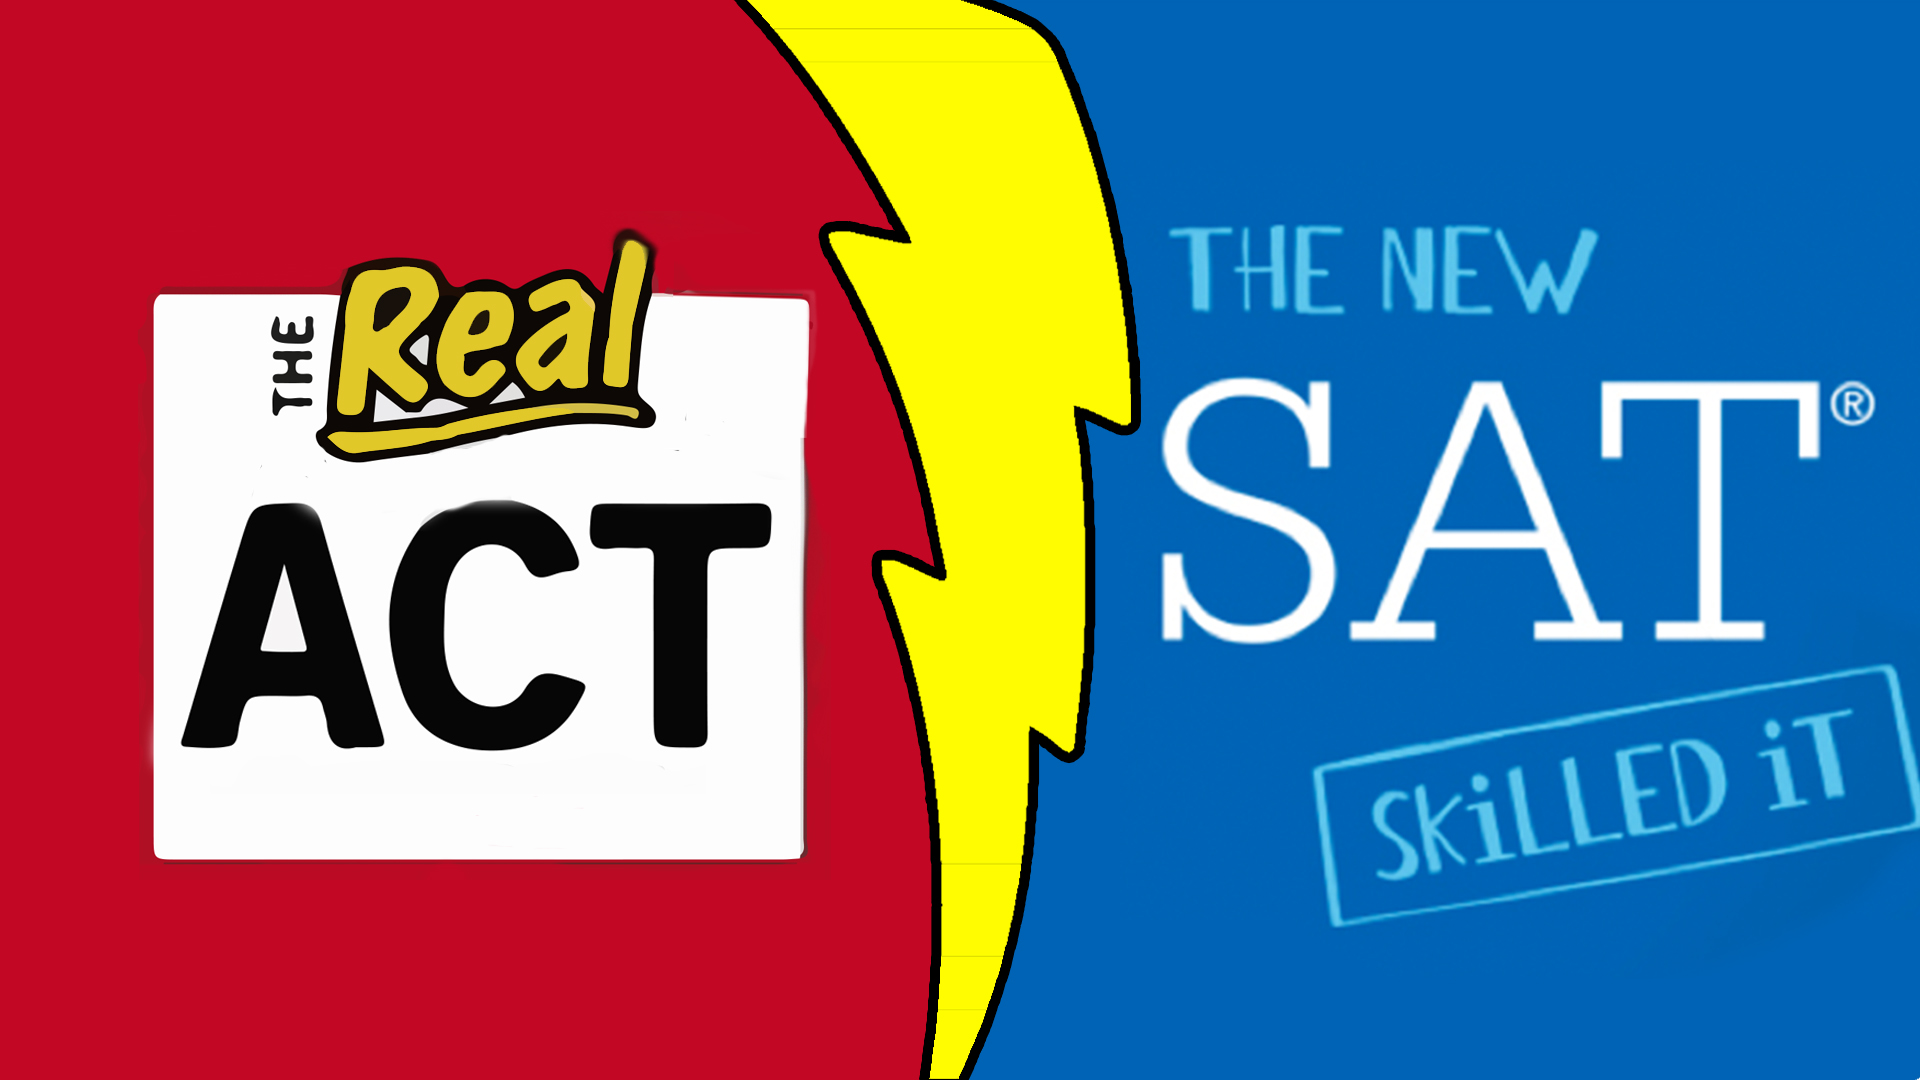 The ACT vs The New SAT: What are the similarities and differences between these two college entrance exams?